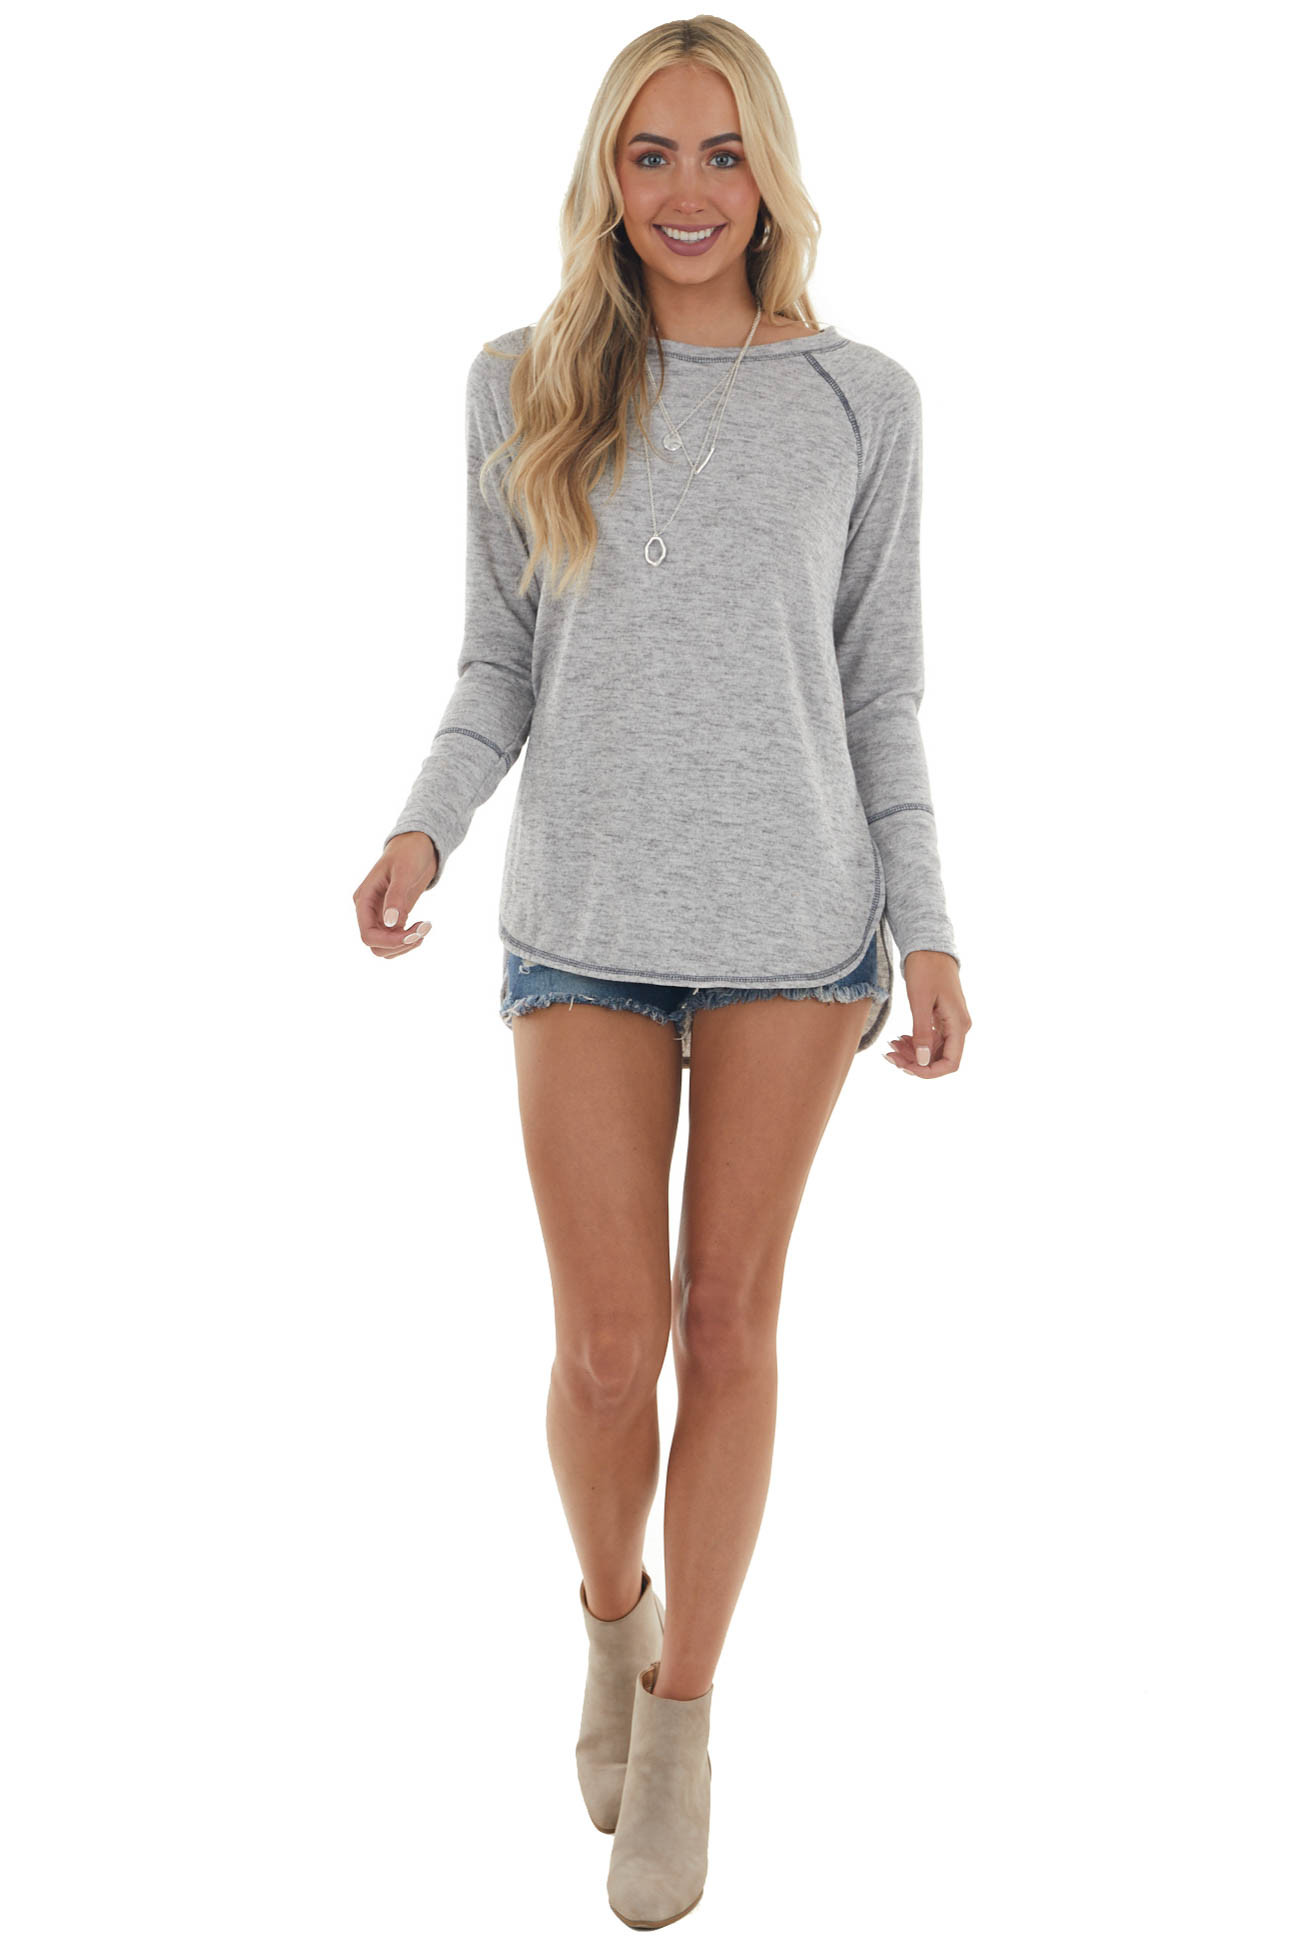 Dove Grey Soft Knit Top with Long Sleeves